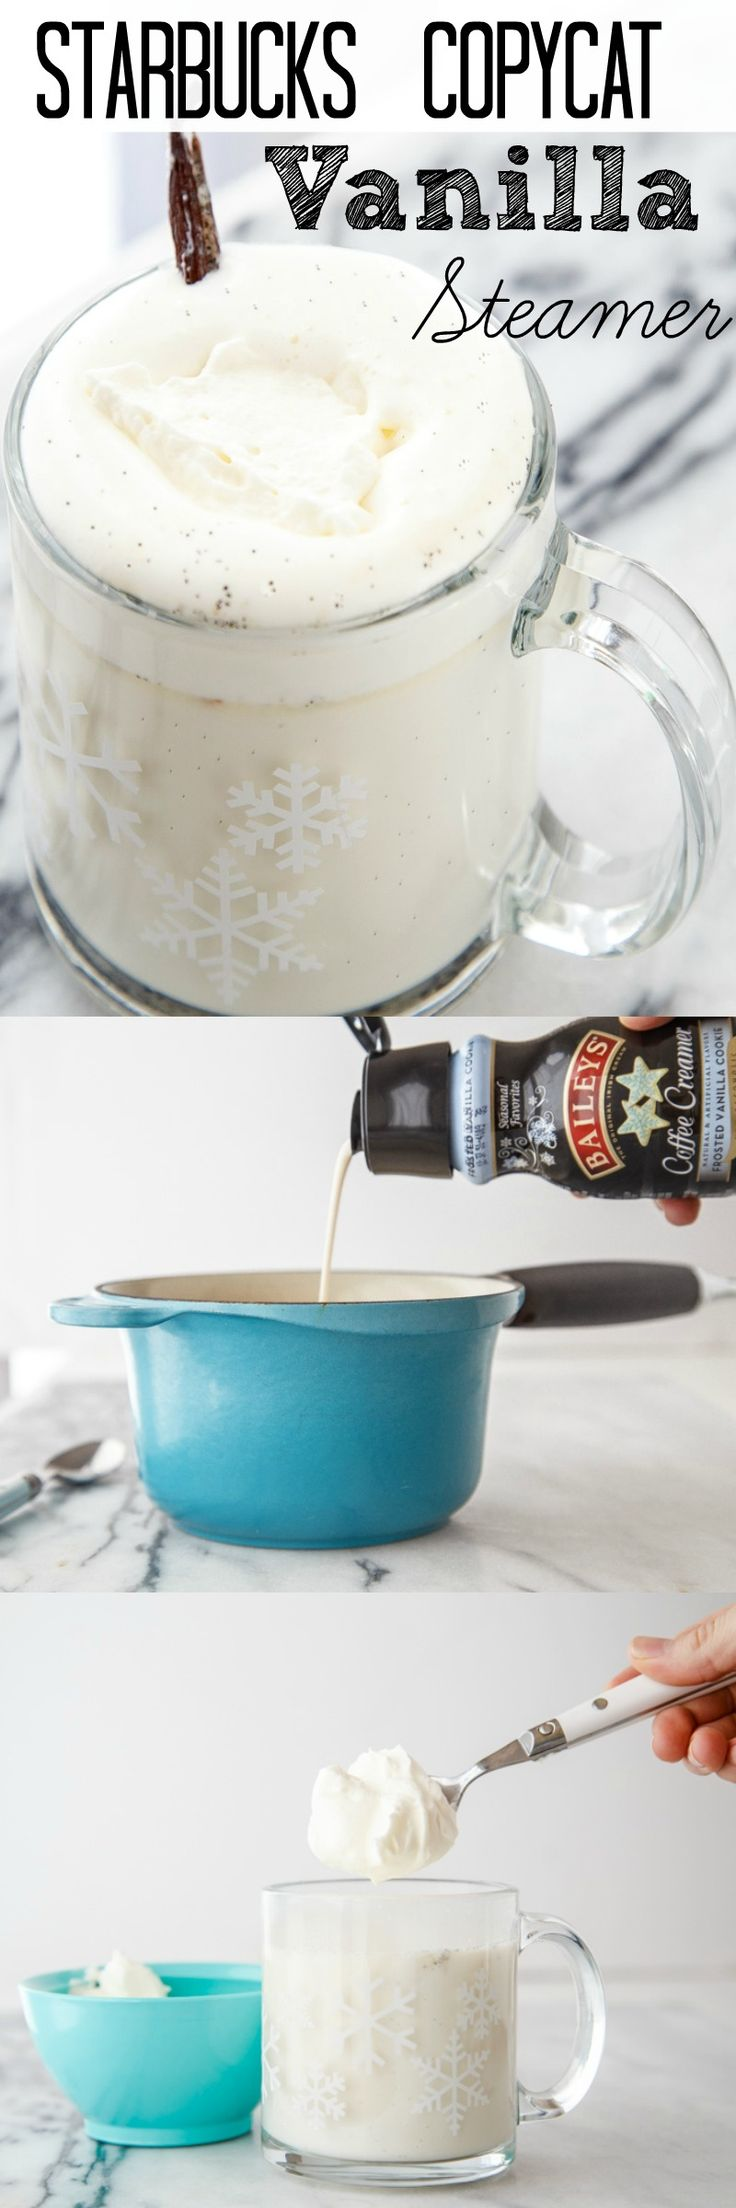 Copycat Starbucks drink: Vanilla Steamer. So rich and foamy, but caffeine free!